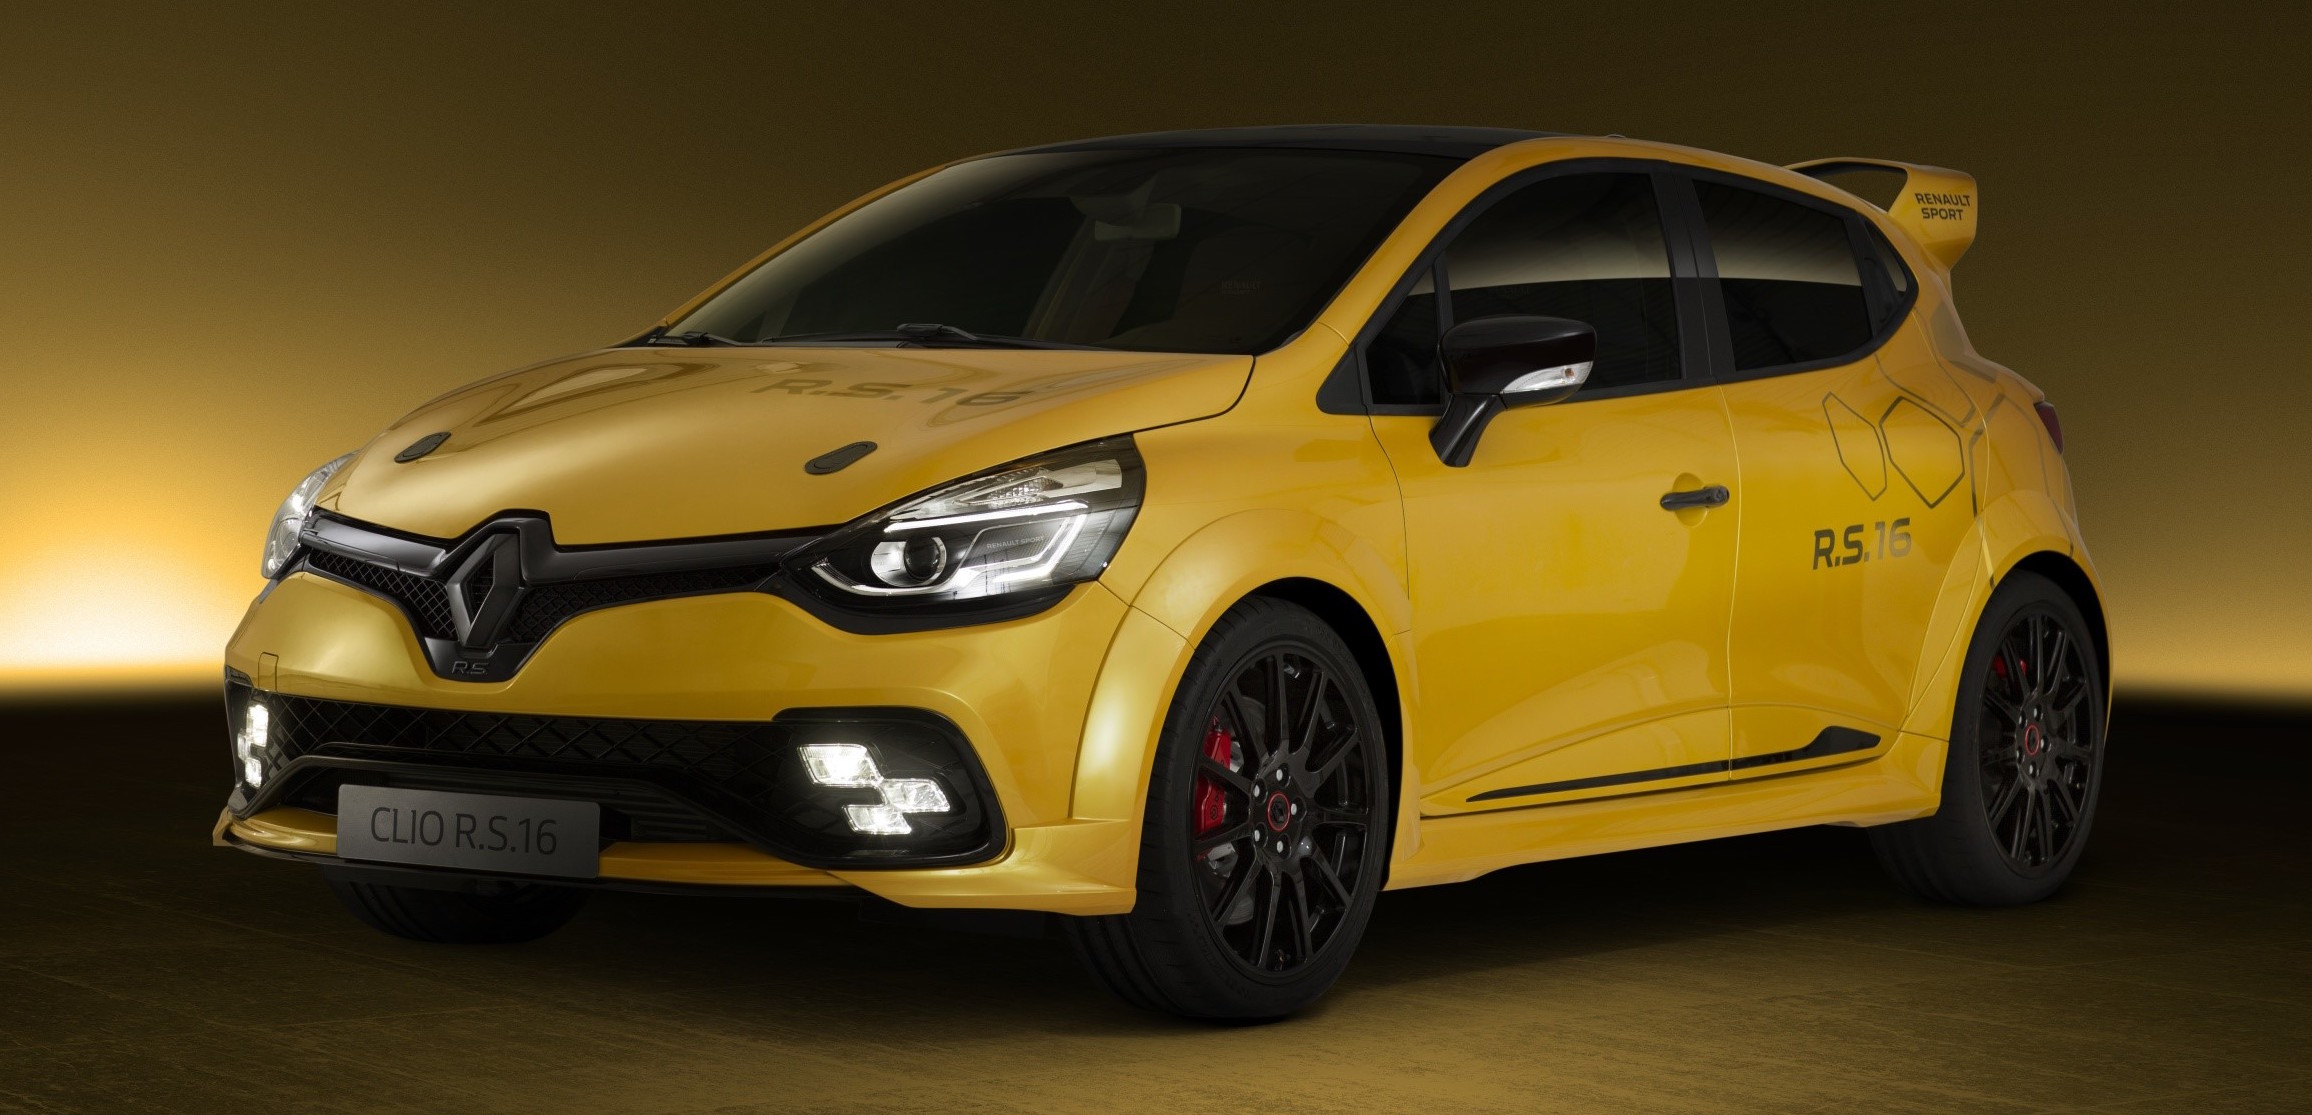 renault clio rs 16 275 hp 360 nm concept debuts. Black Bedroom Furniture Sets. Home Design Ideas